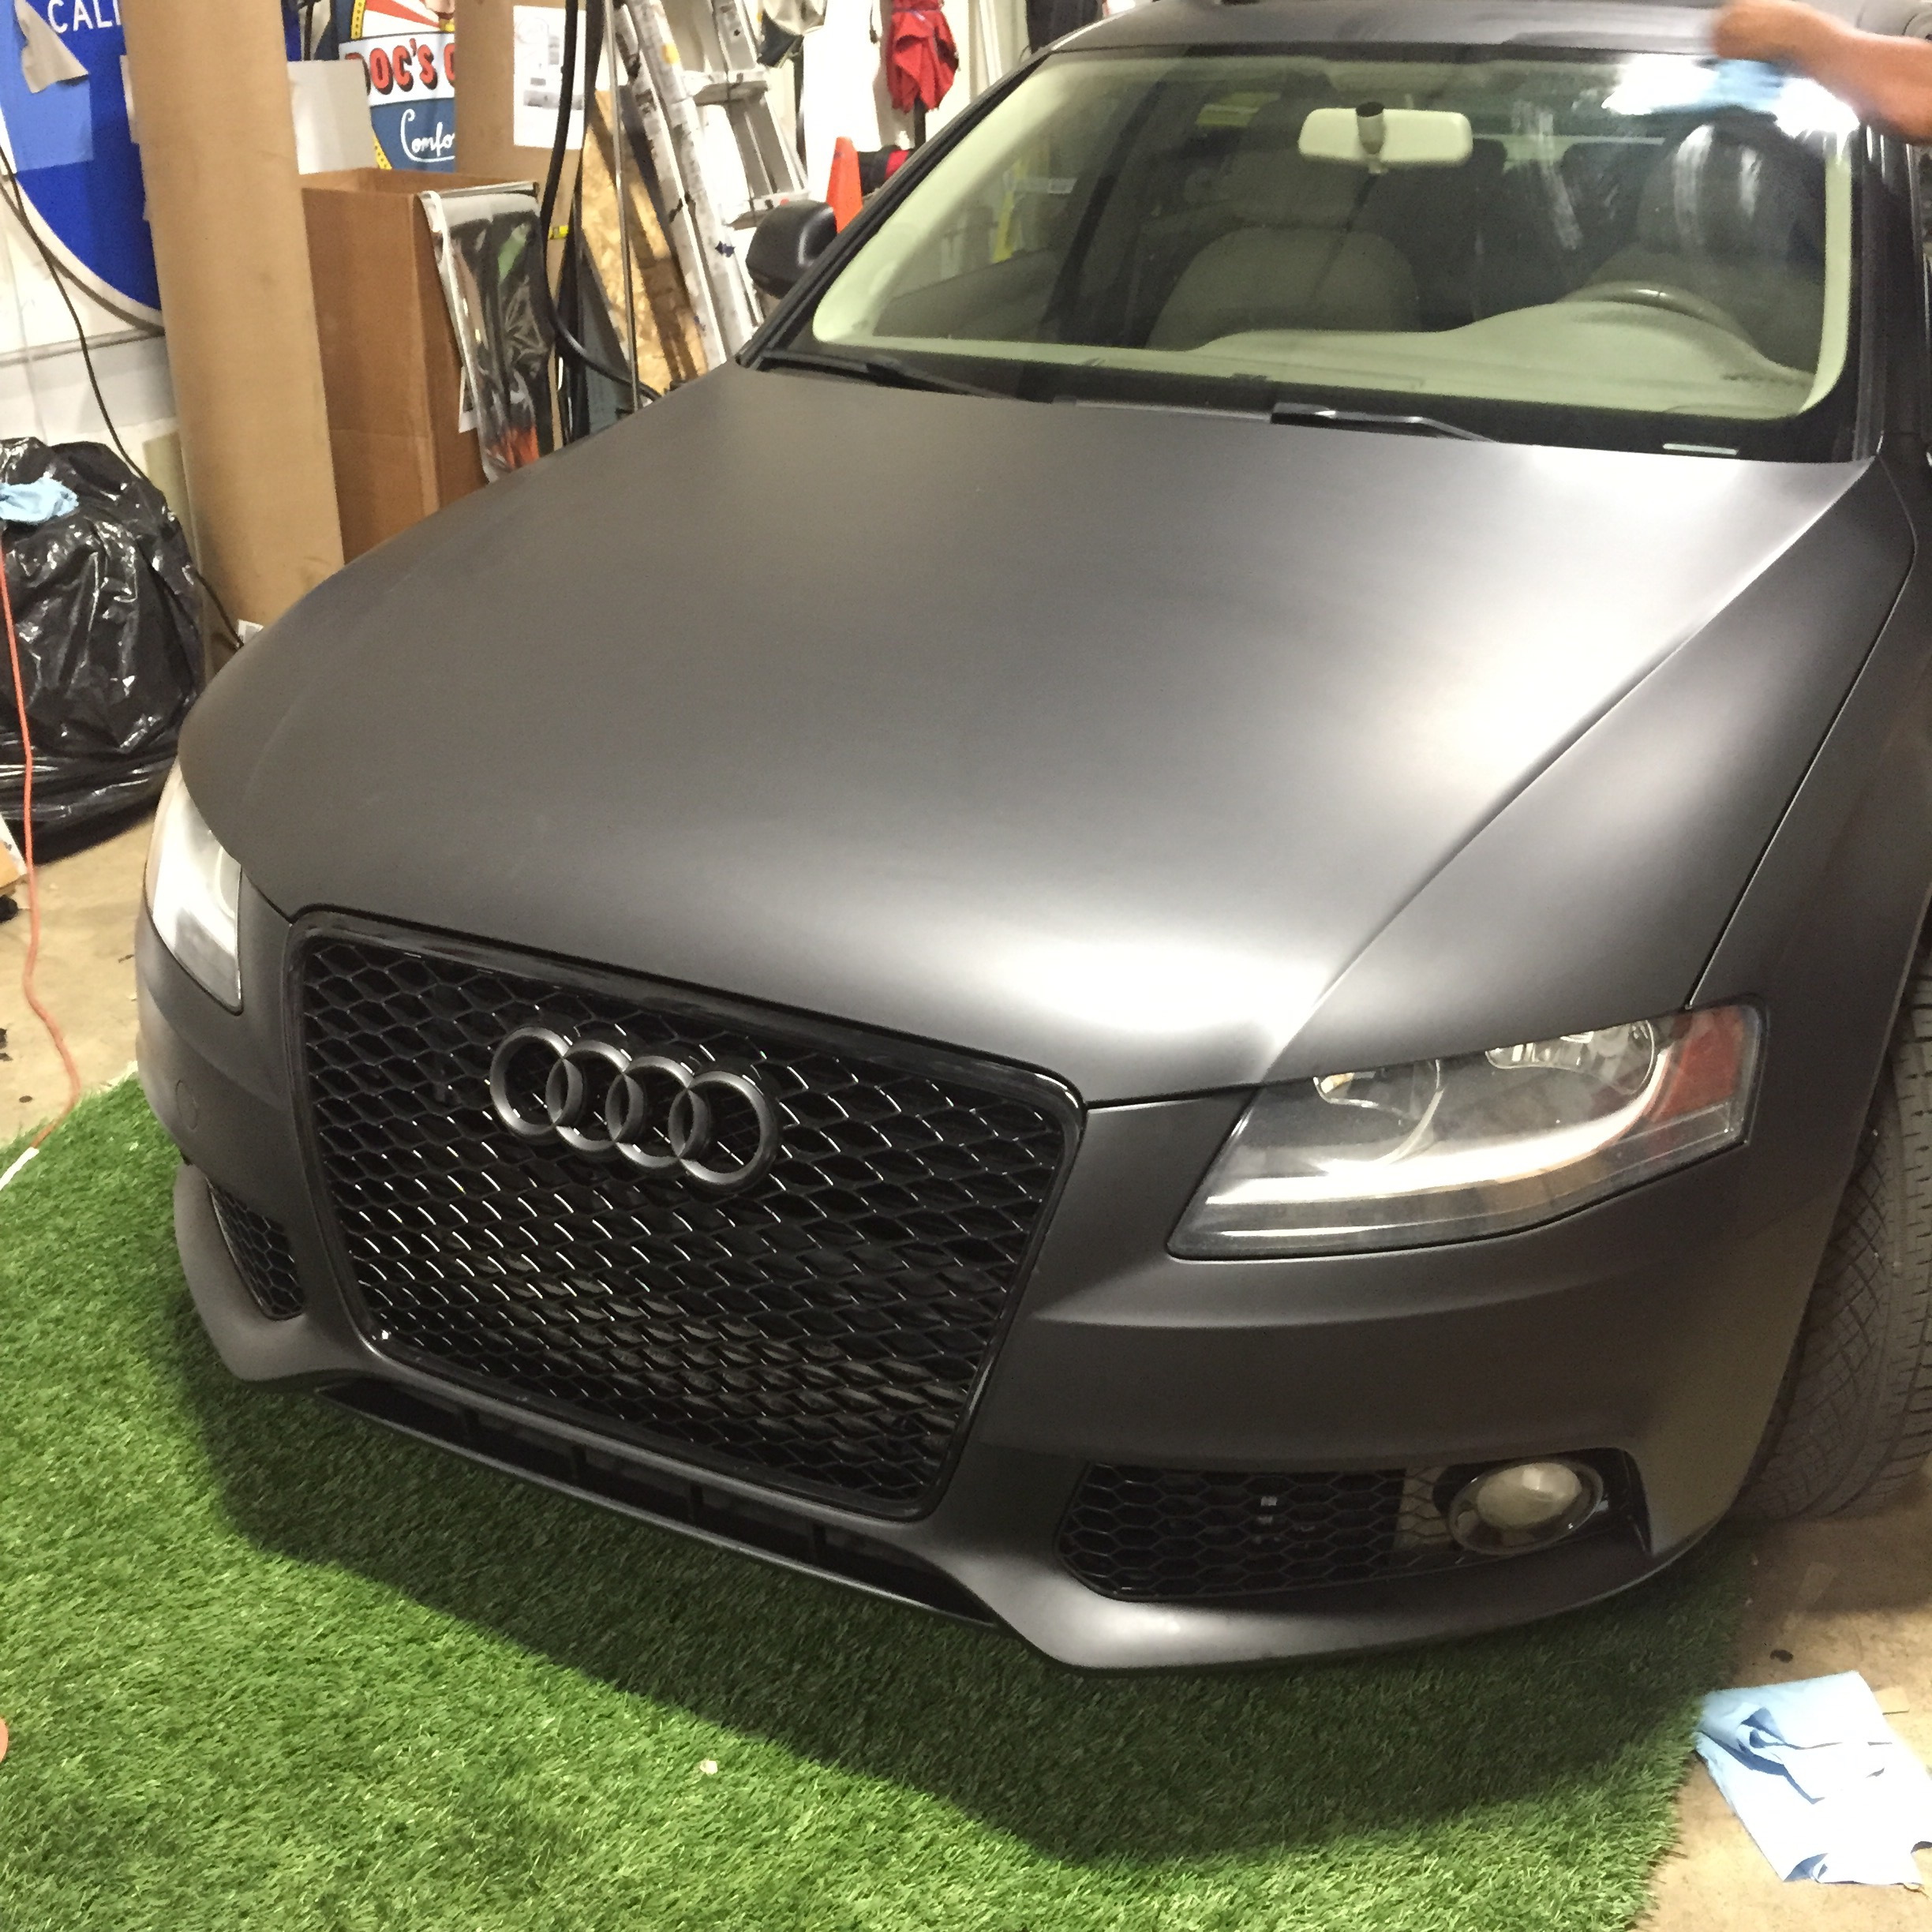 Matte Black Color Change Car Wrap